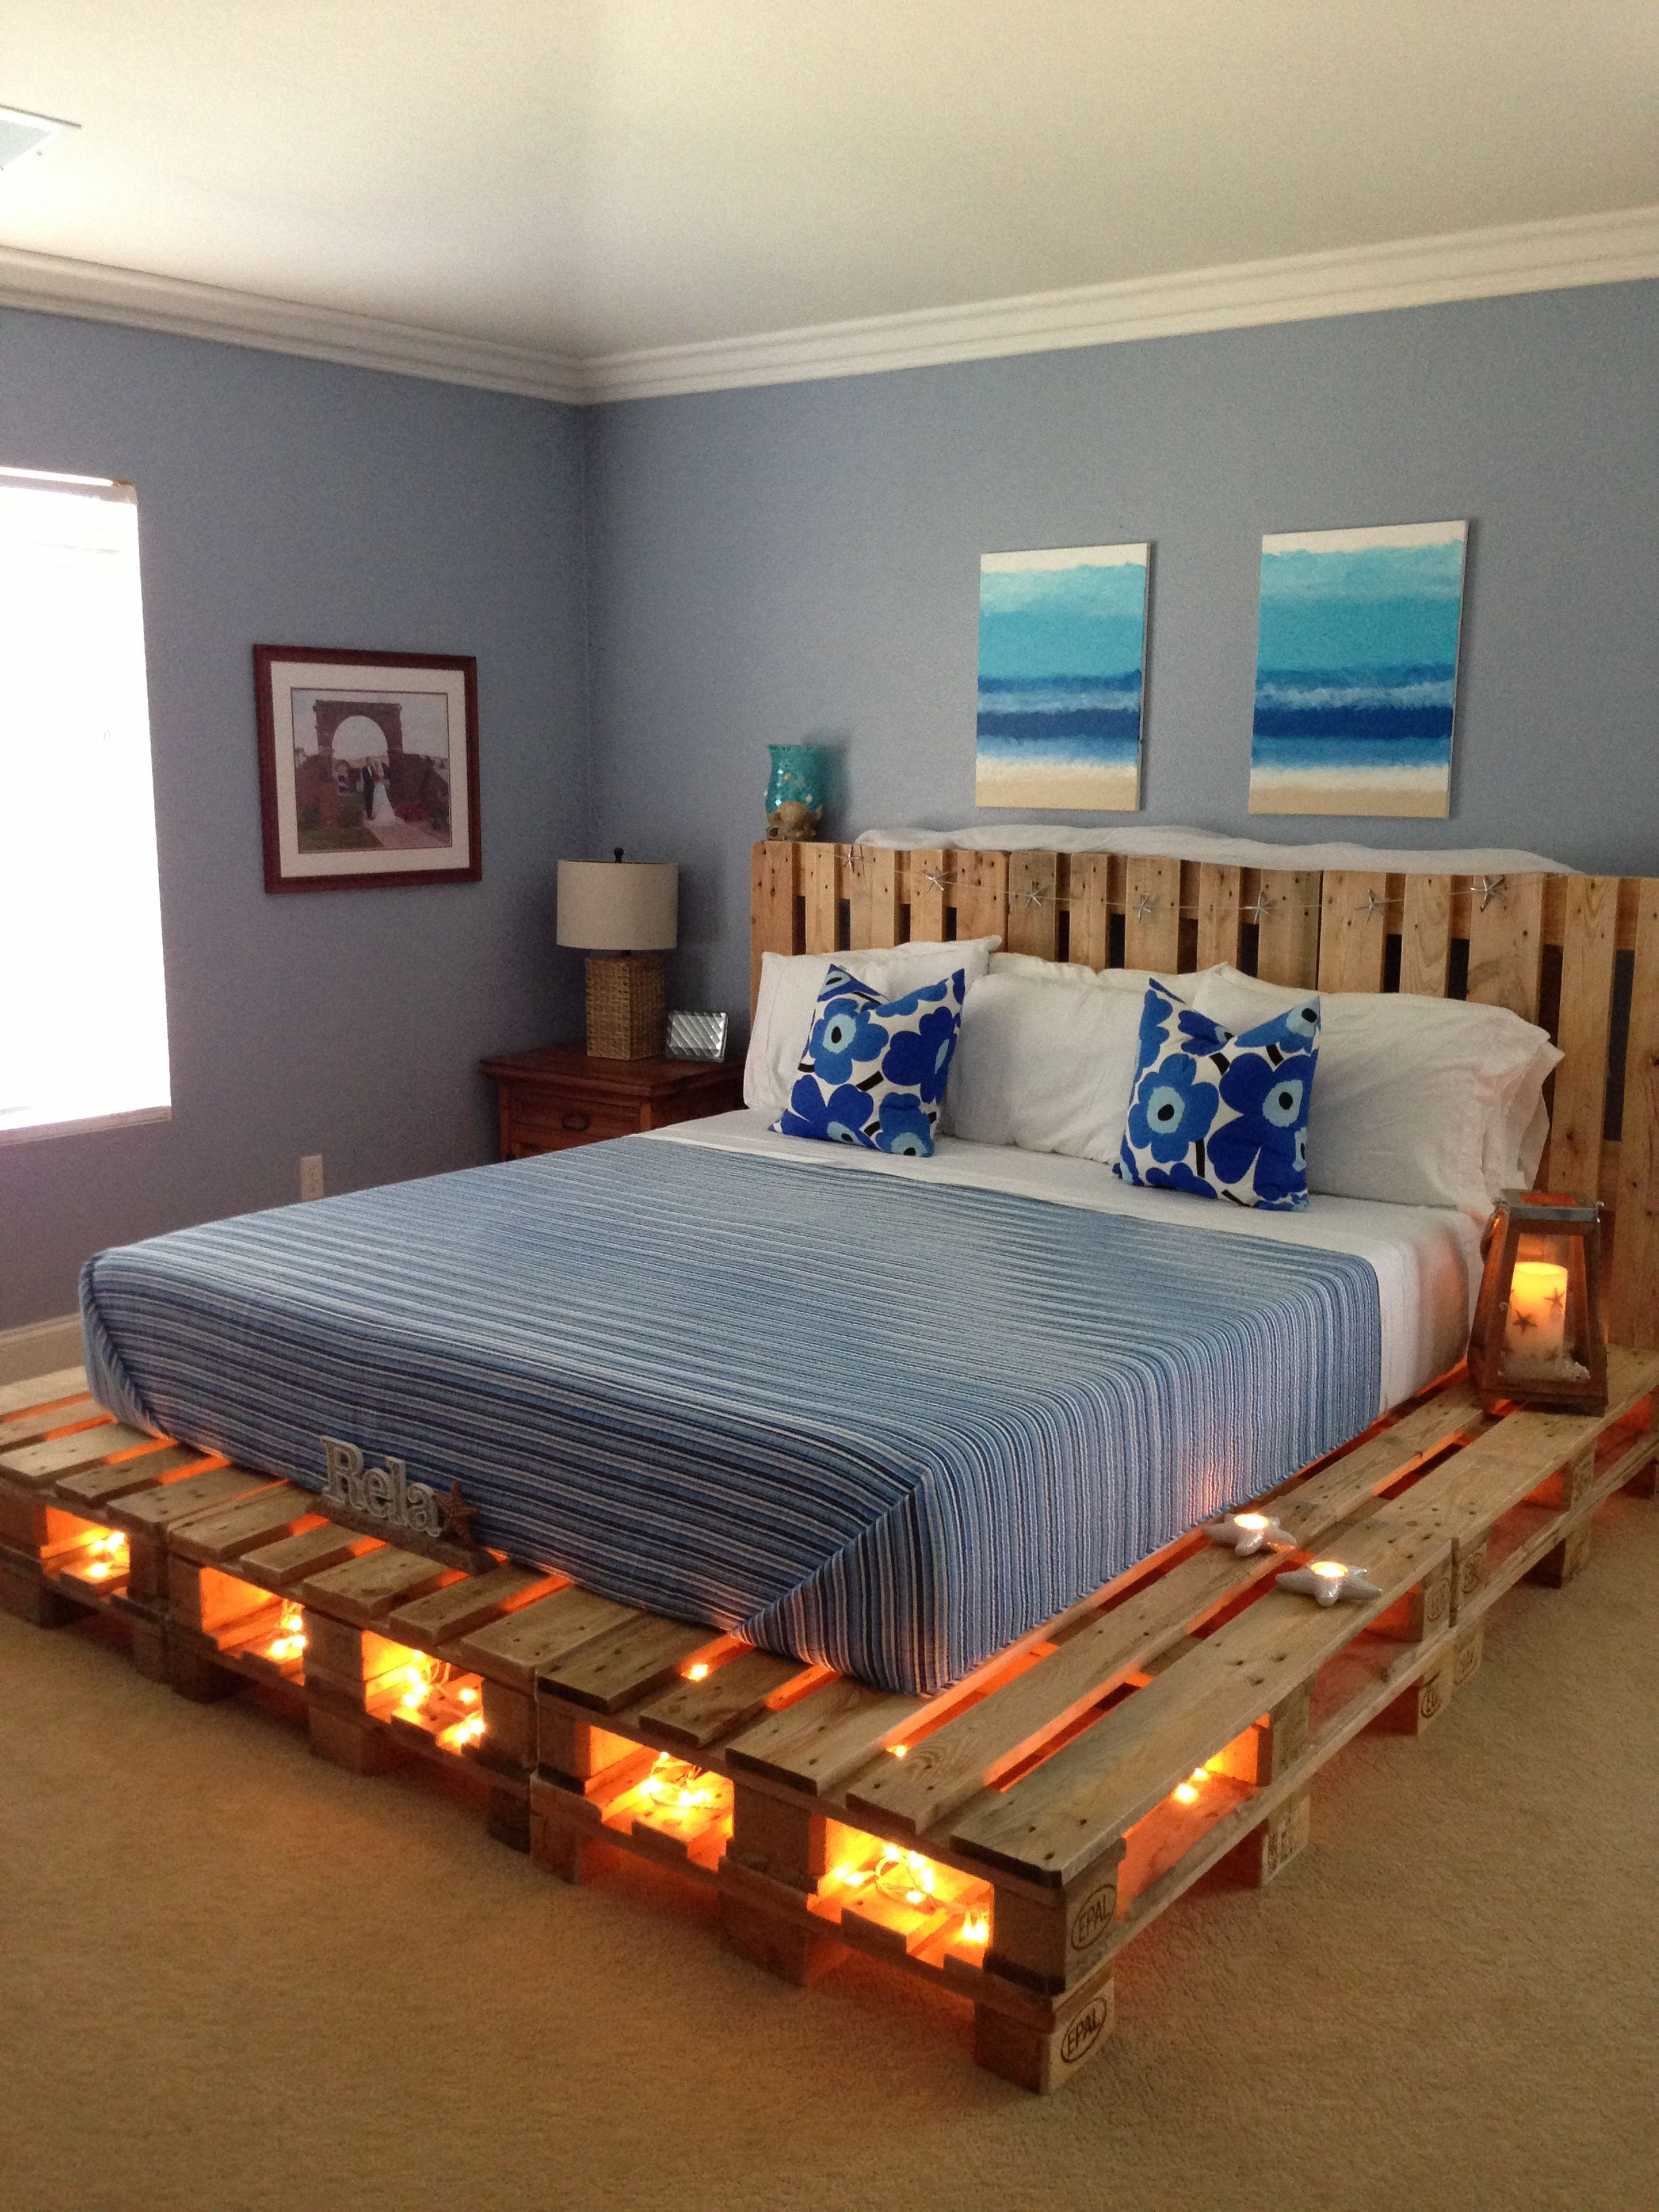 Pin By Martin Fumero Gauna On New House 2020 Diy Pallet Furniture Wooden Pallet Beds Diy Pallet Bed